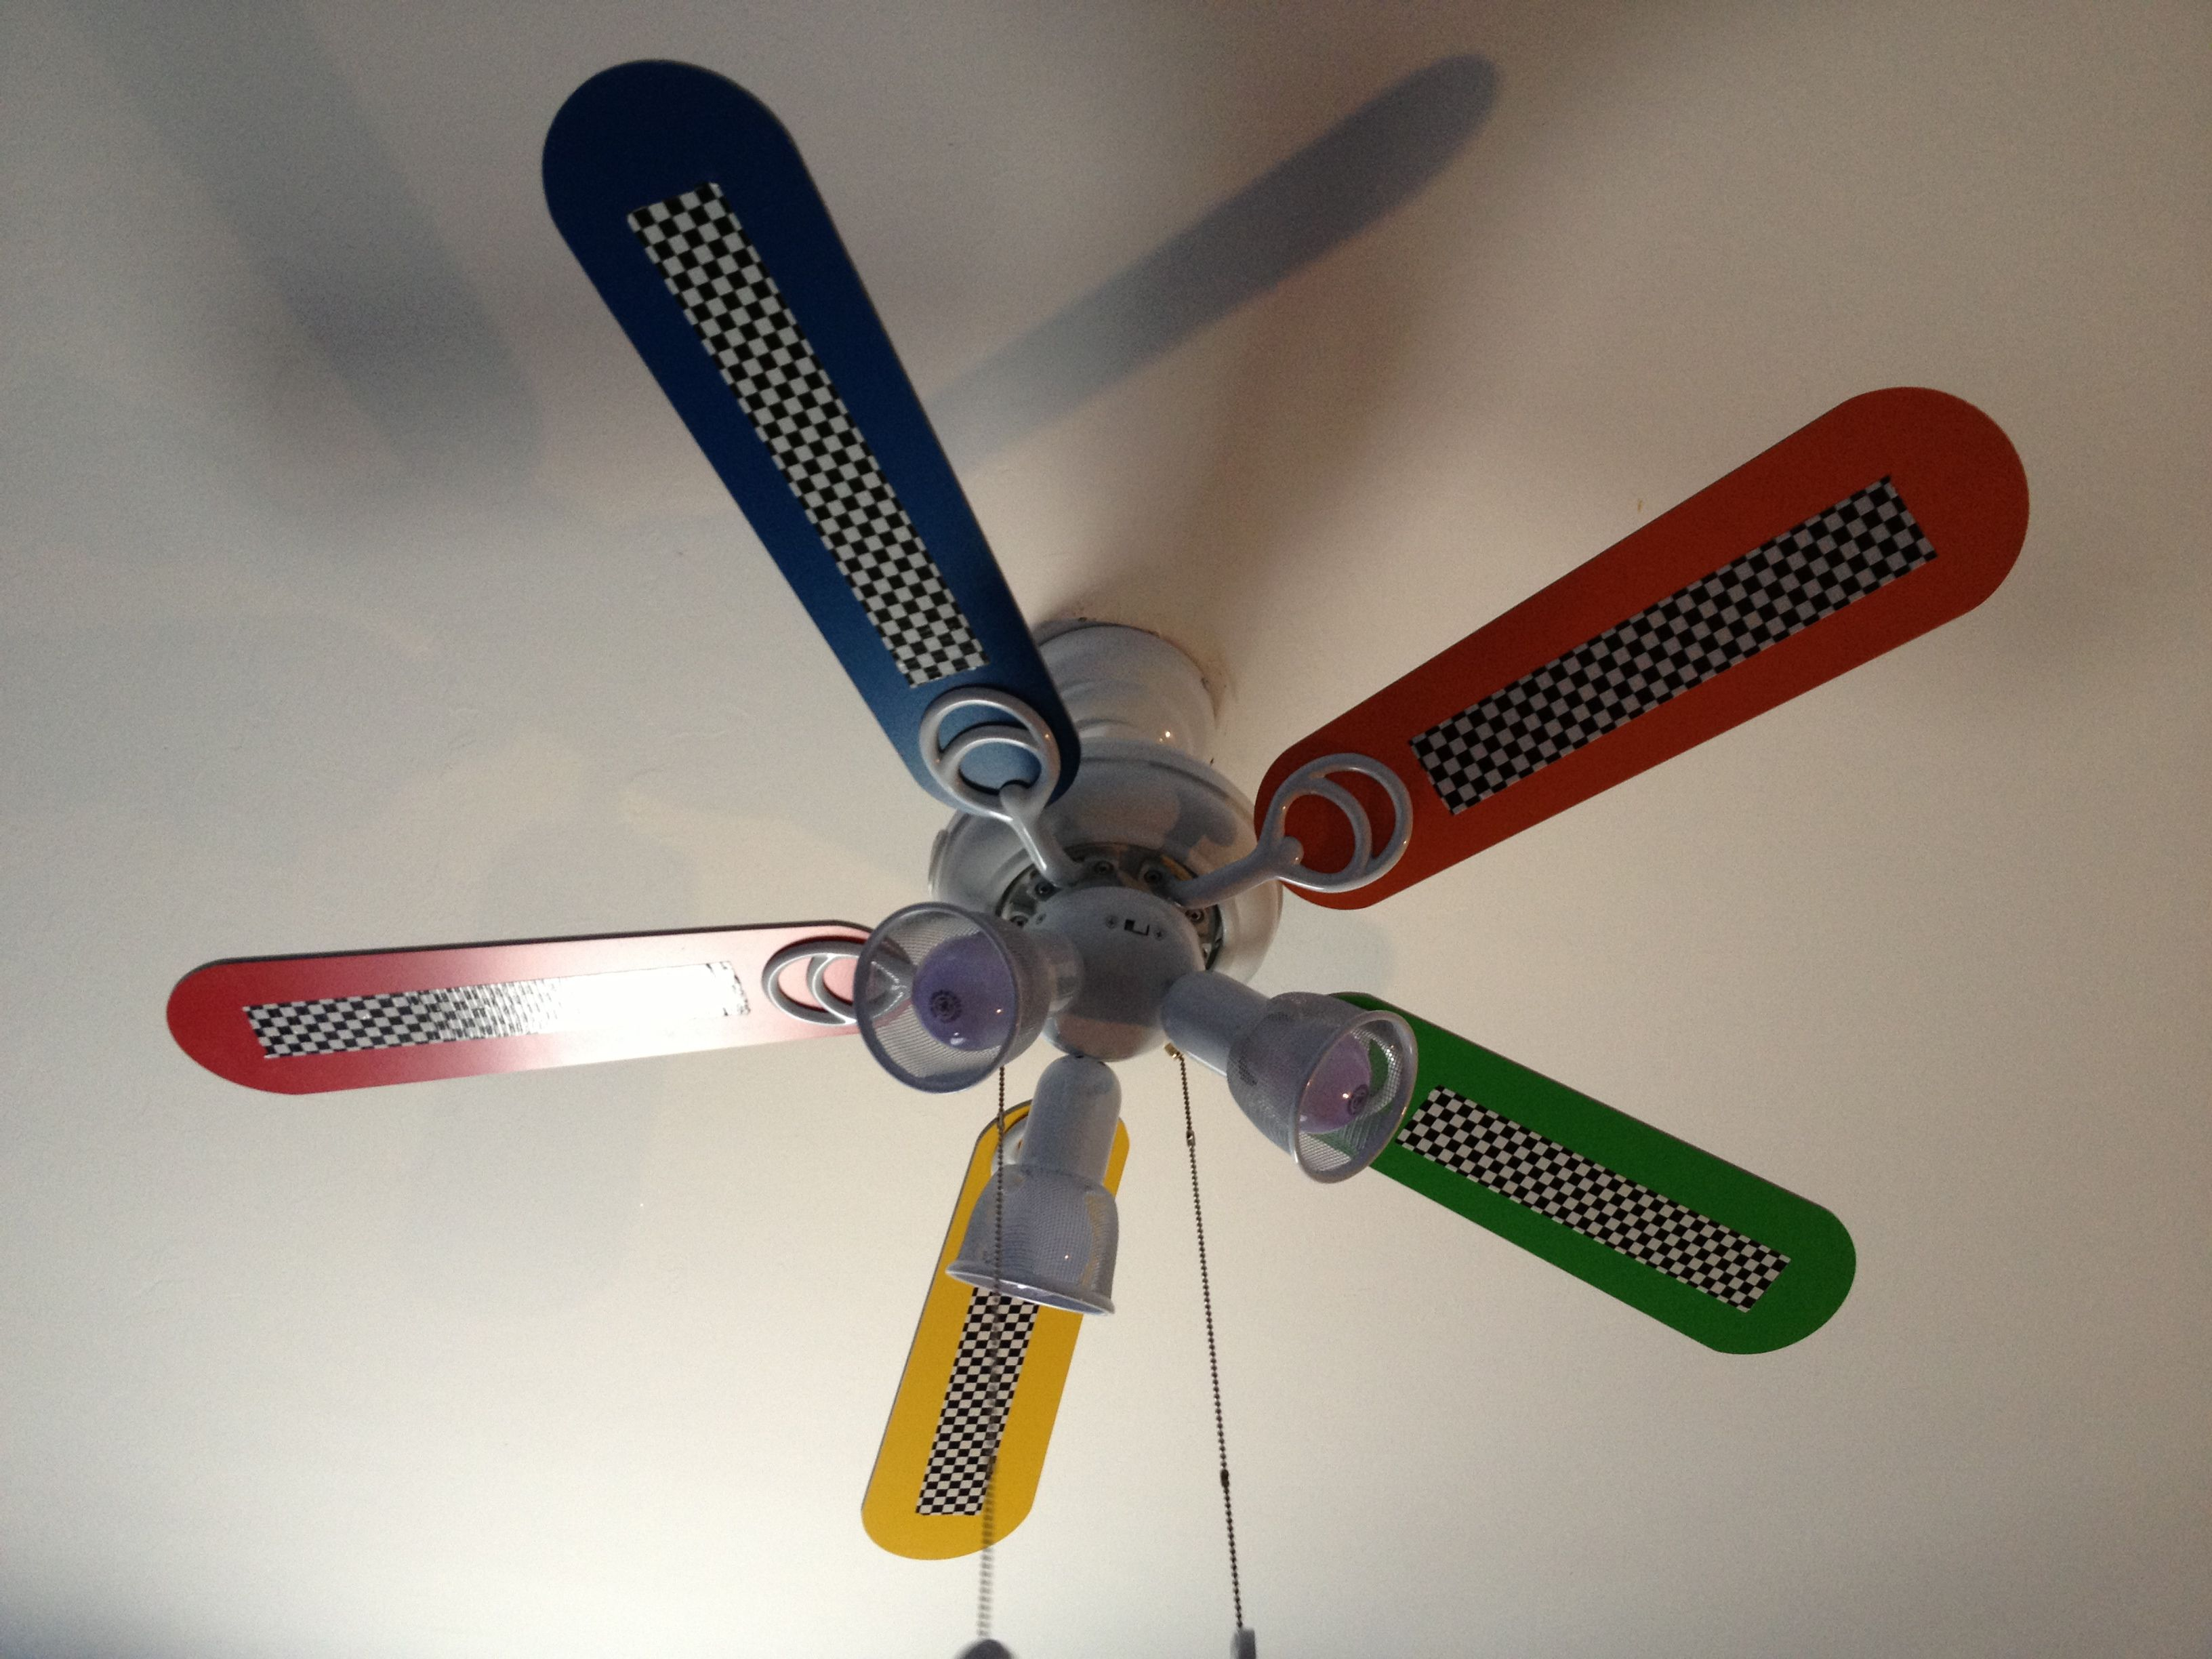 Race car bedroom duct tape fan my pinterest projects completed race car bedroom duct tape fan aloadofball Image collections